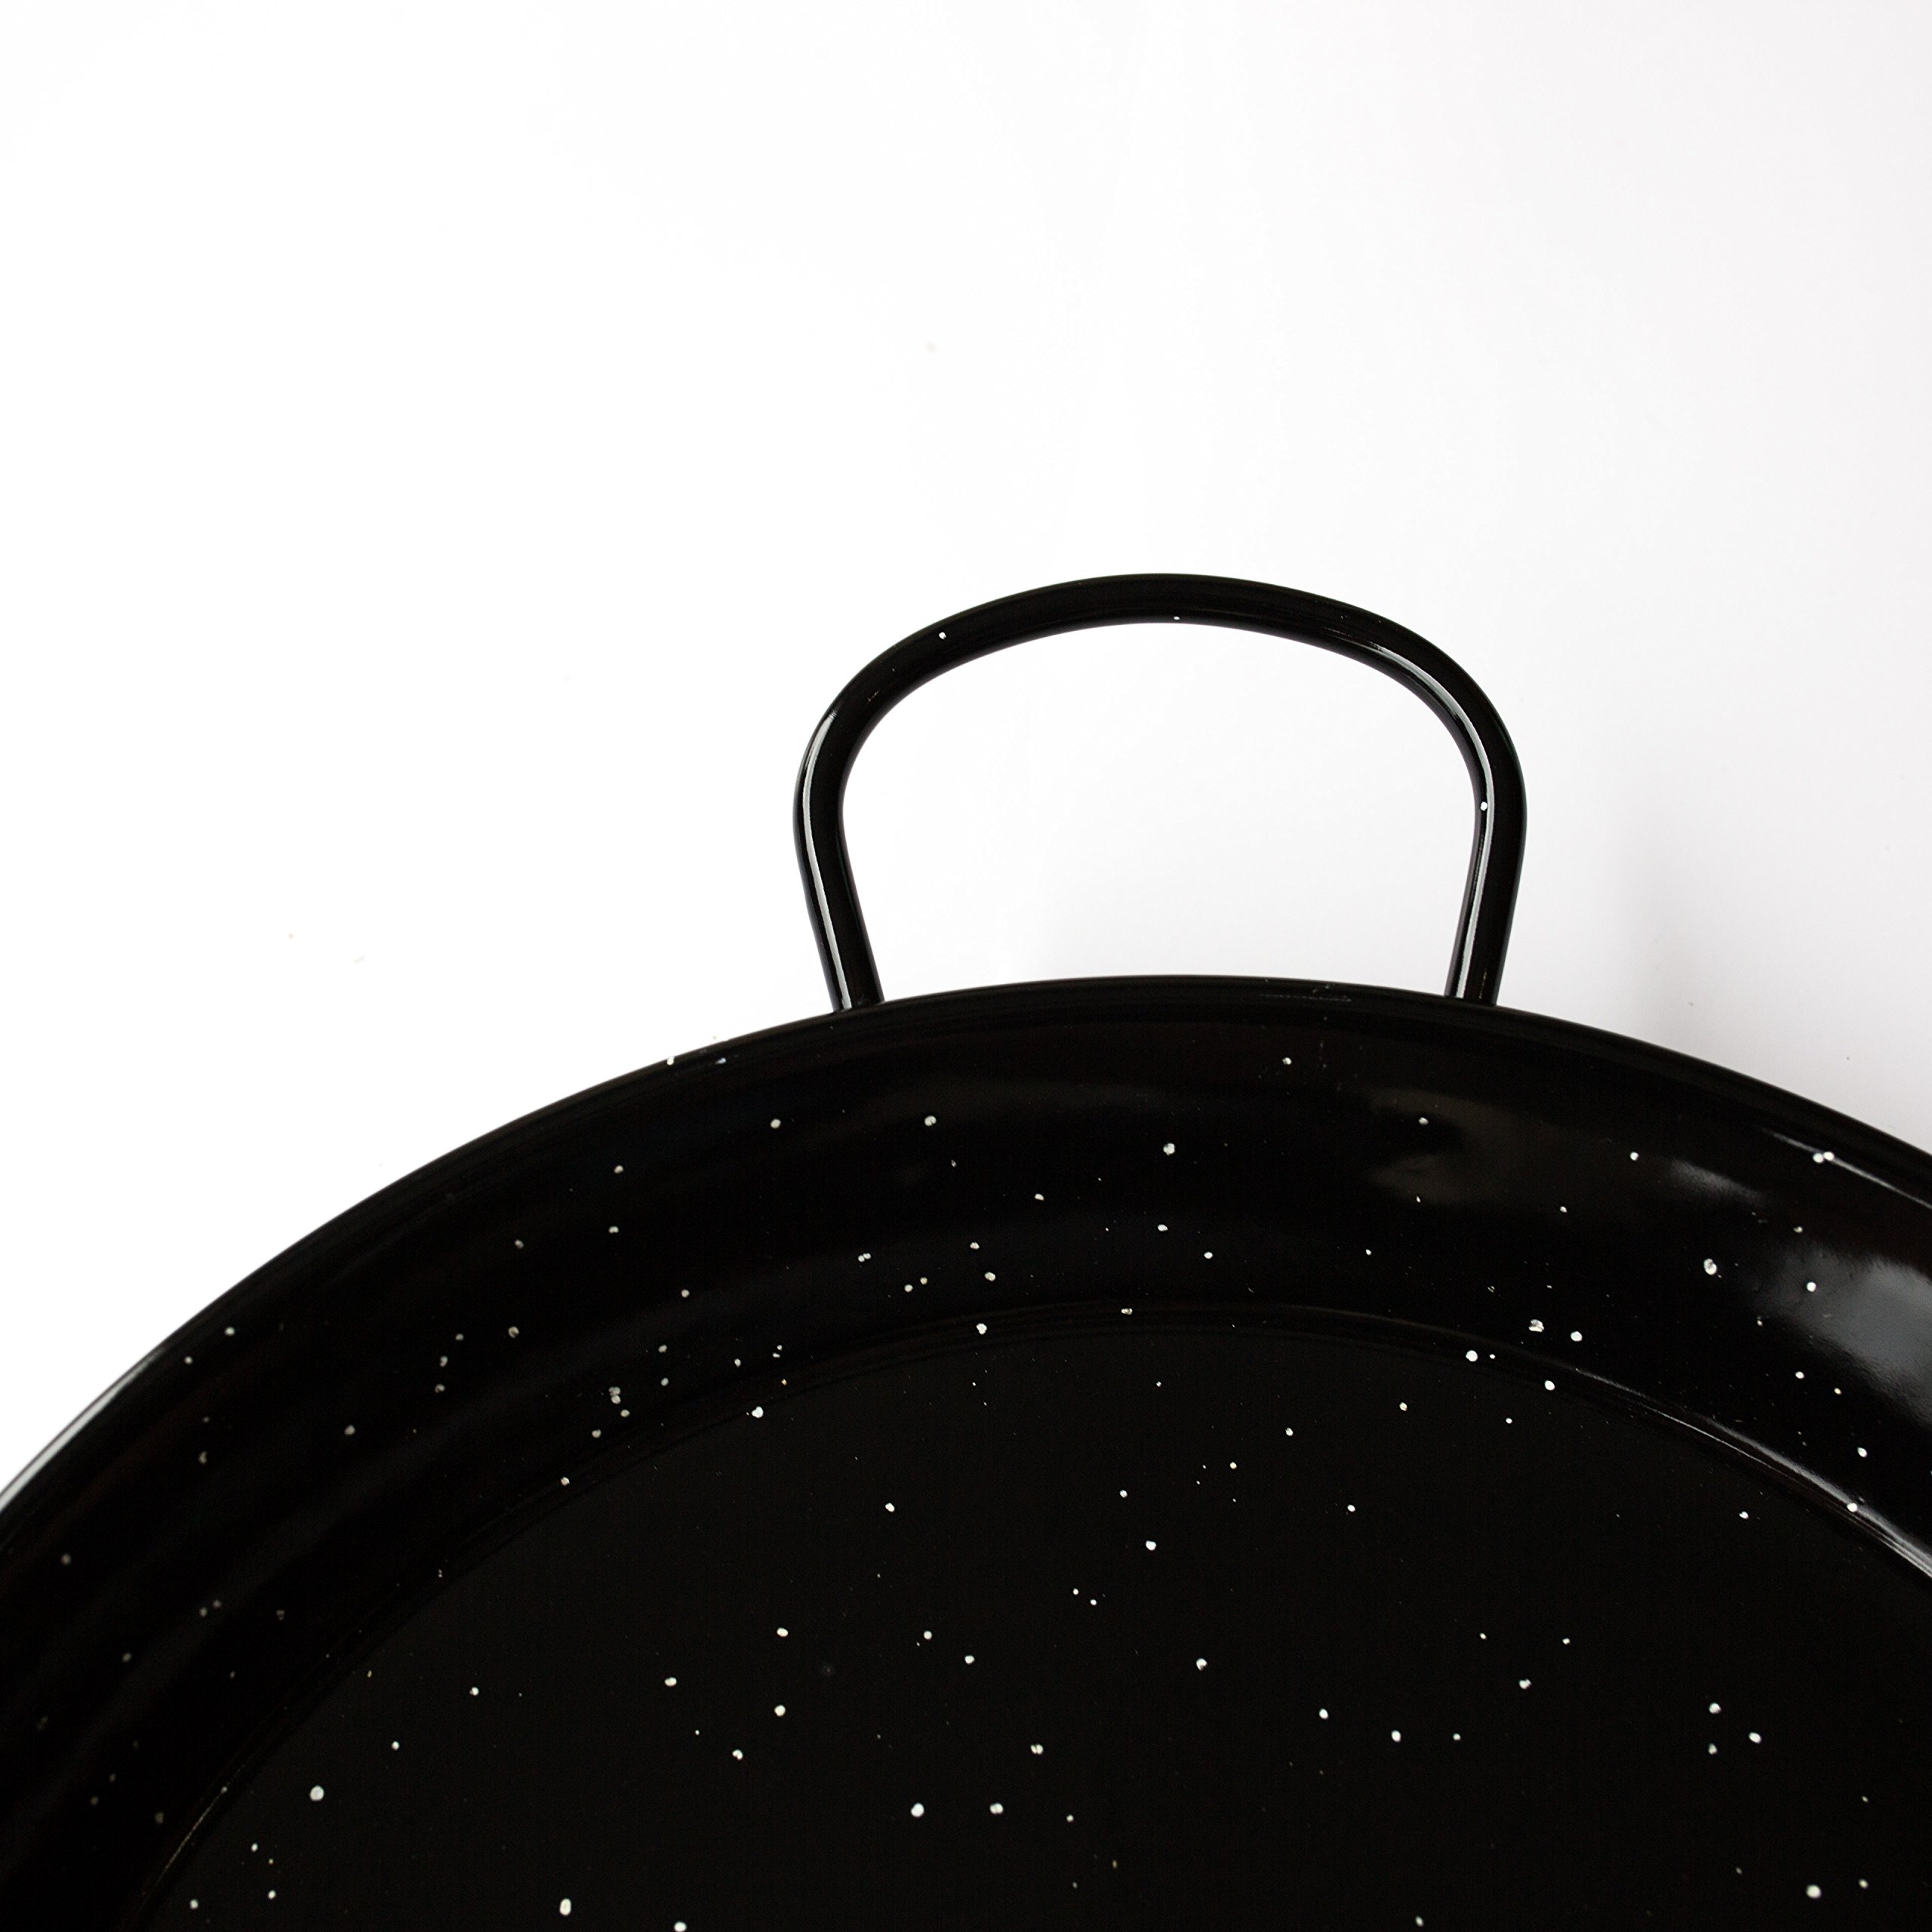 Enamelled Steel Valencian paella pan 12Inch / 30cm / 4 Servings by Castevia Imports (Image #3)